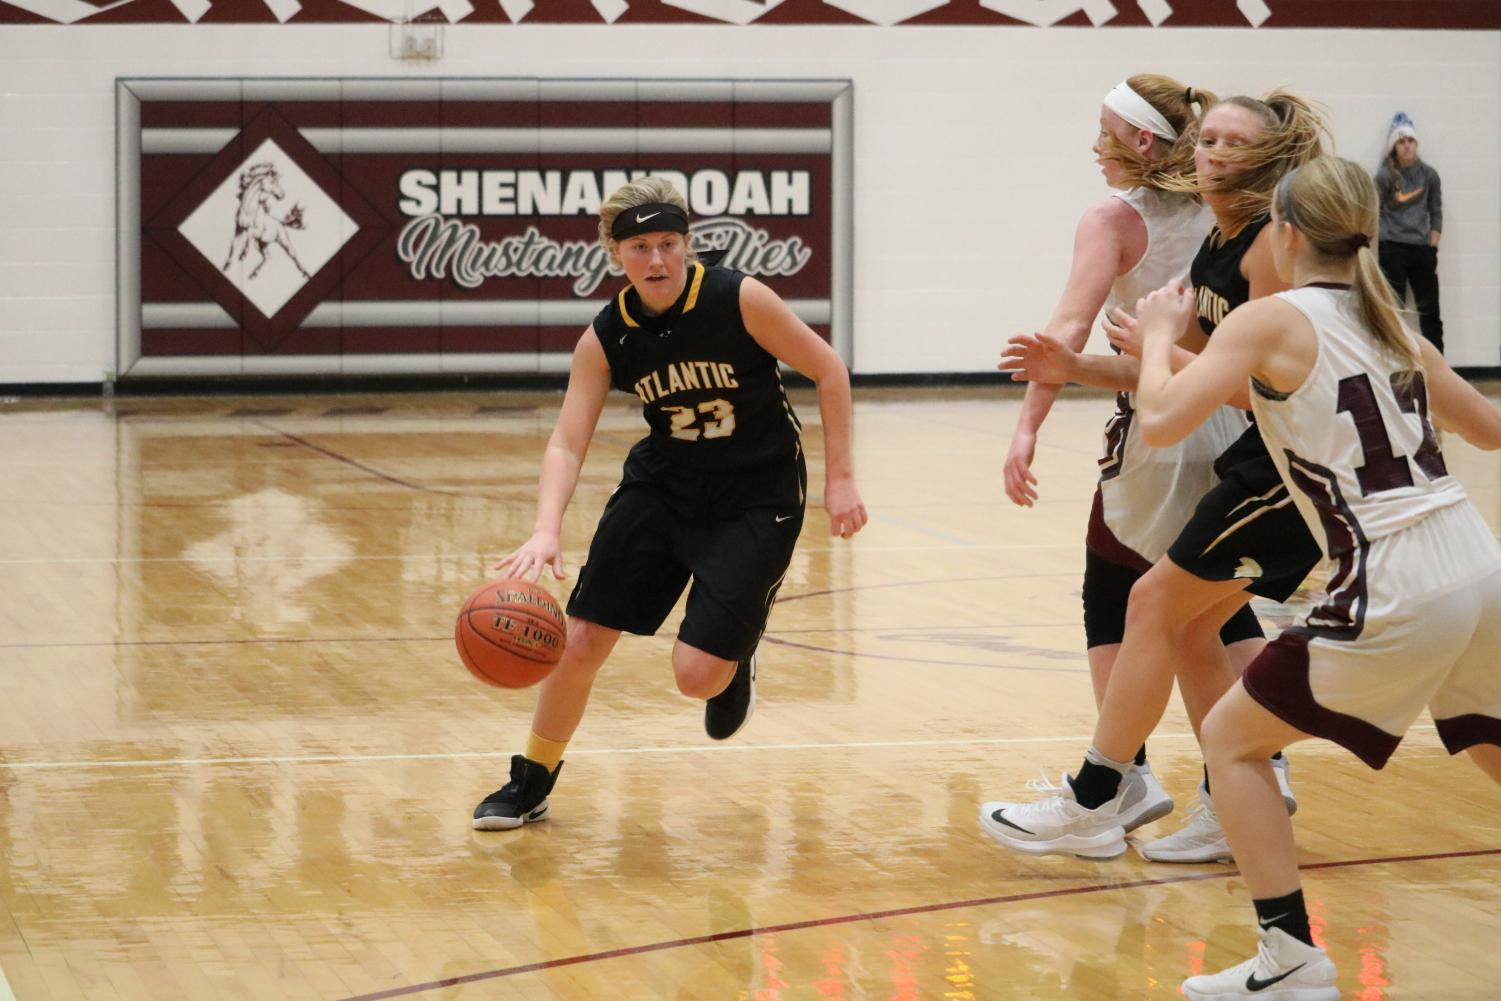 MAKING A MOVE- Senior Baylee Newell drives down the court during a game against the Shenandoah Fillies. Newell has been a member of the girls' basketball team all four years of her high school career.